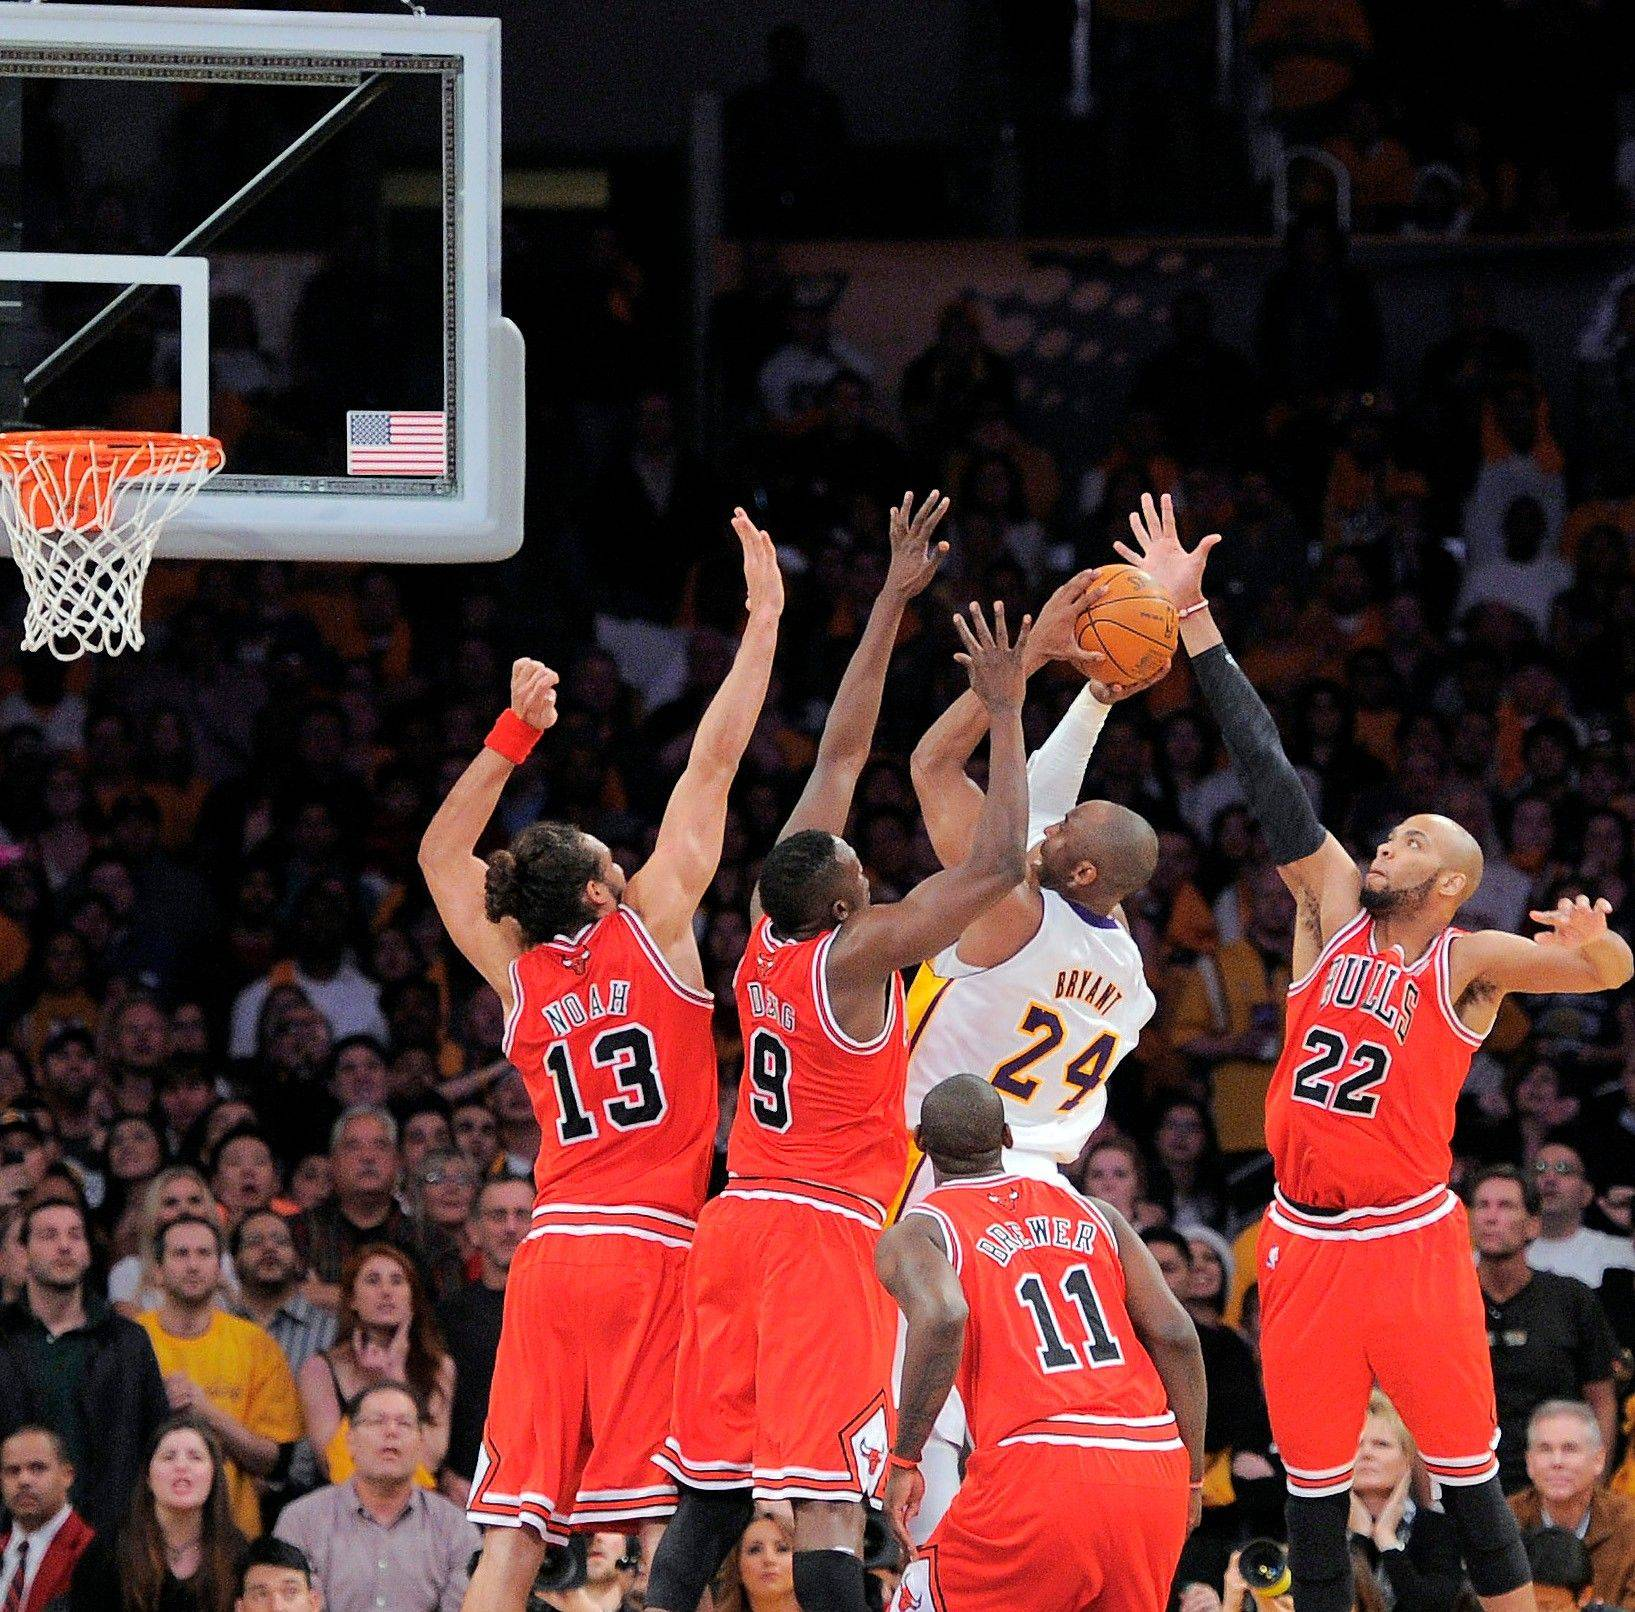 The Lakers' Kobe Bryant (24) tries to take a shot surrounded by Bulls as time expires Sunday. Luol Deng (9) was credited with blocking Bryant's shot to preserve the Bulls' victory.